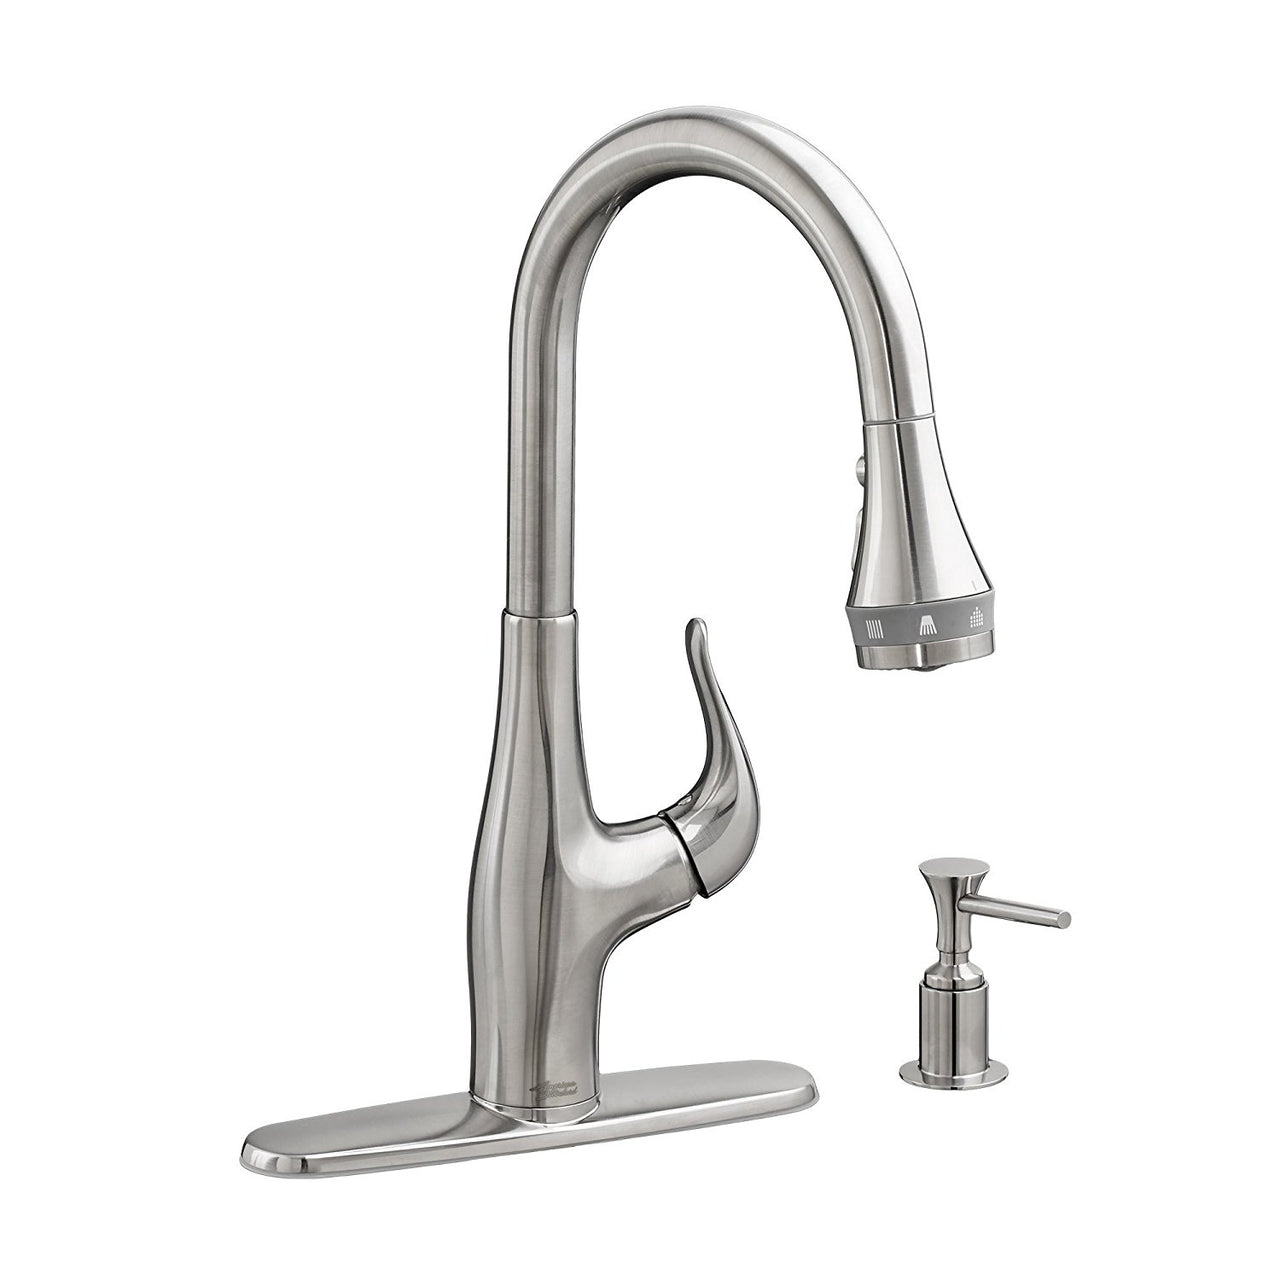 American Standard 9449301.075 Faucet Kit With Soap Dispenser